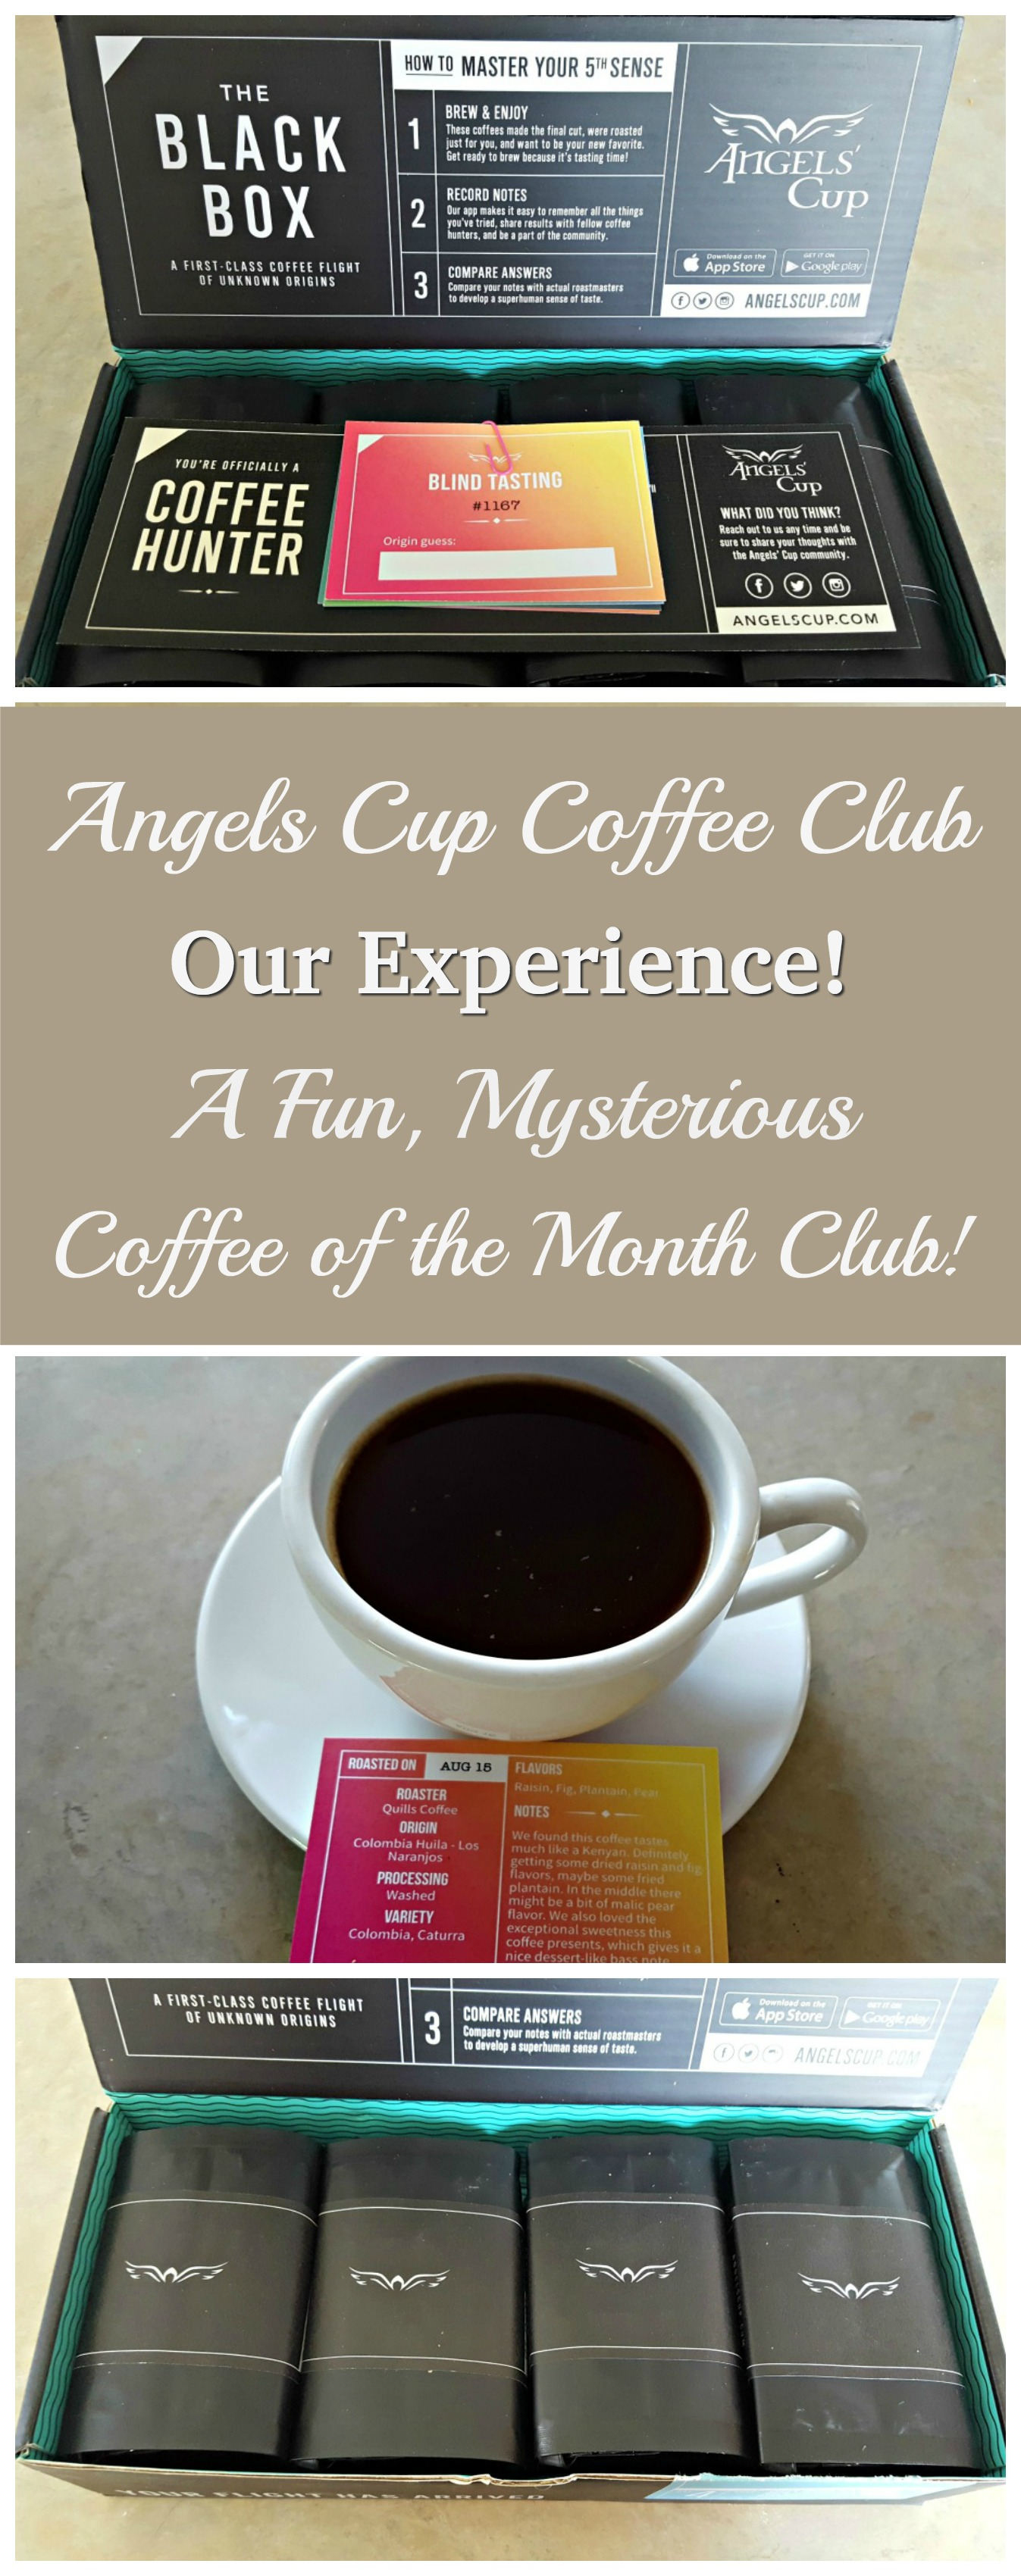 We Tried Angels Cup Coffee Club - We Loved it, and we know you will too!